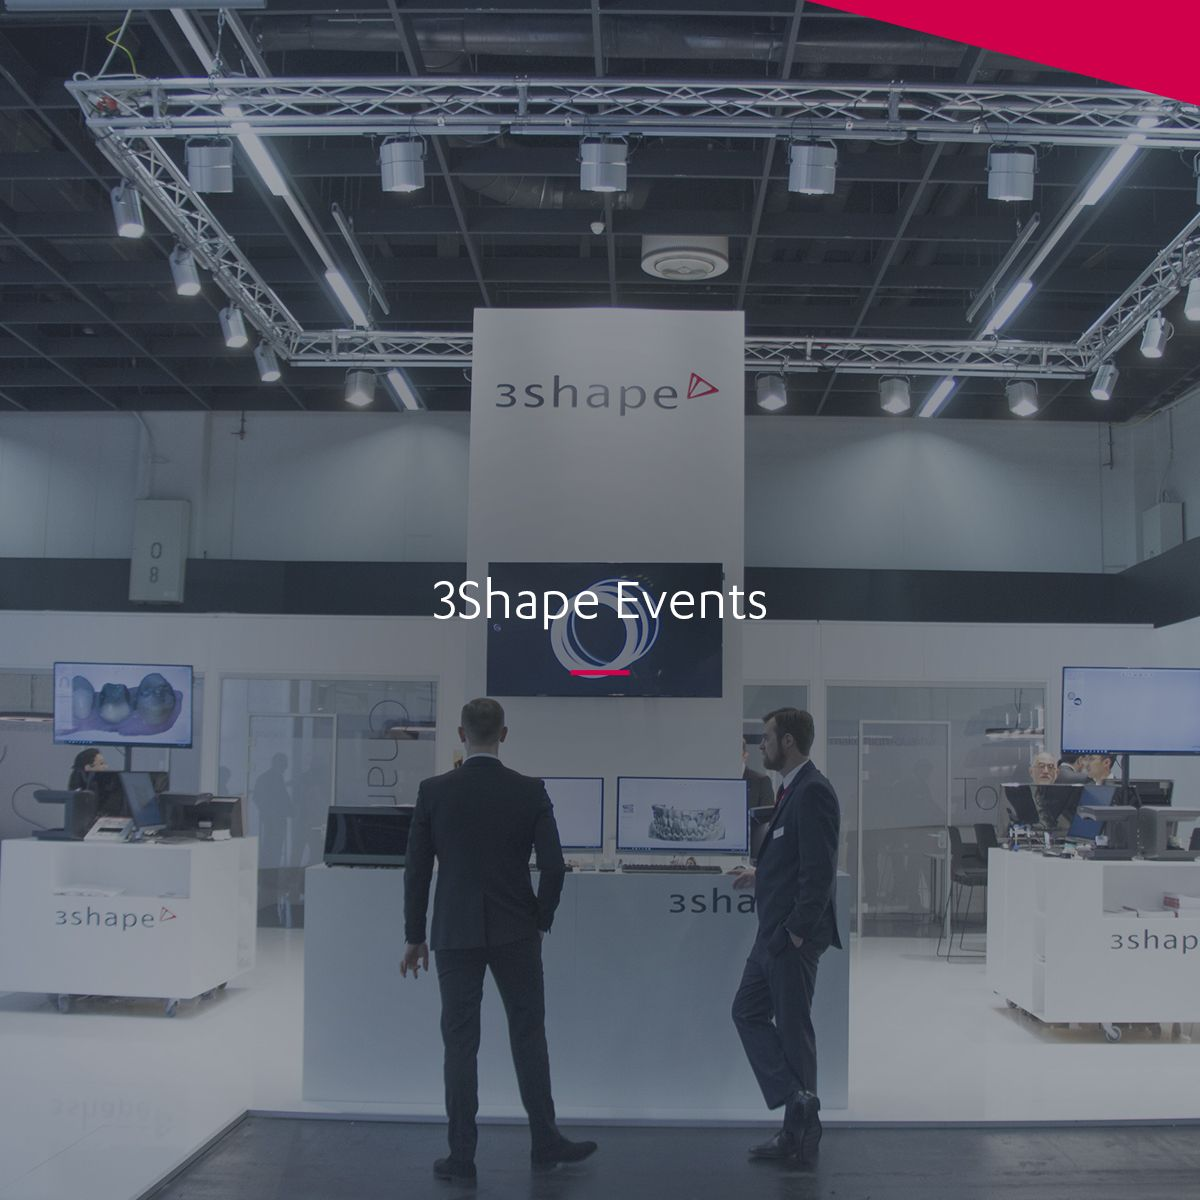 3Shape Live Events & Exhibitions - Meet Us at a Show